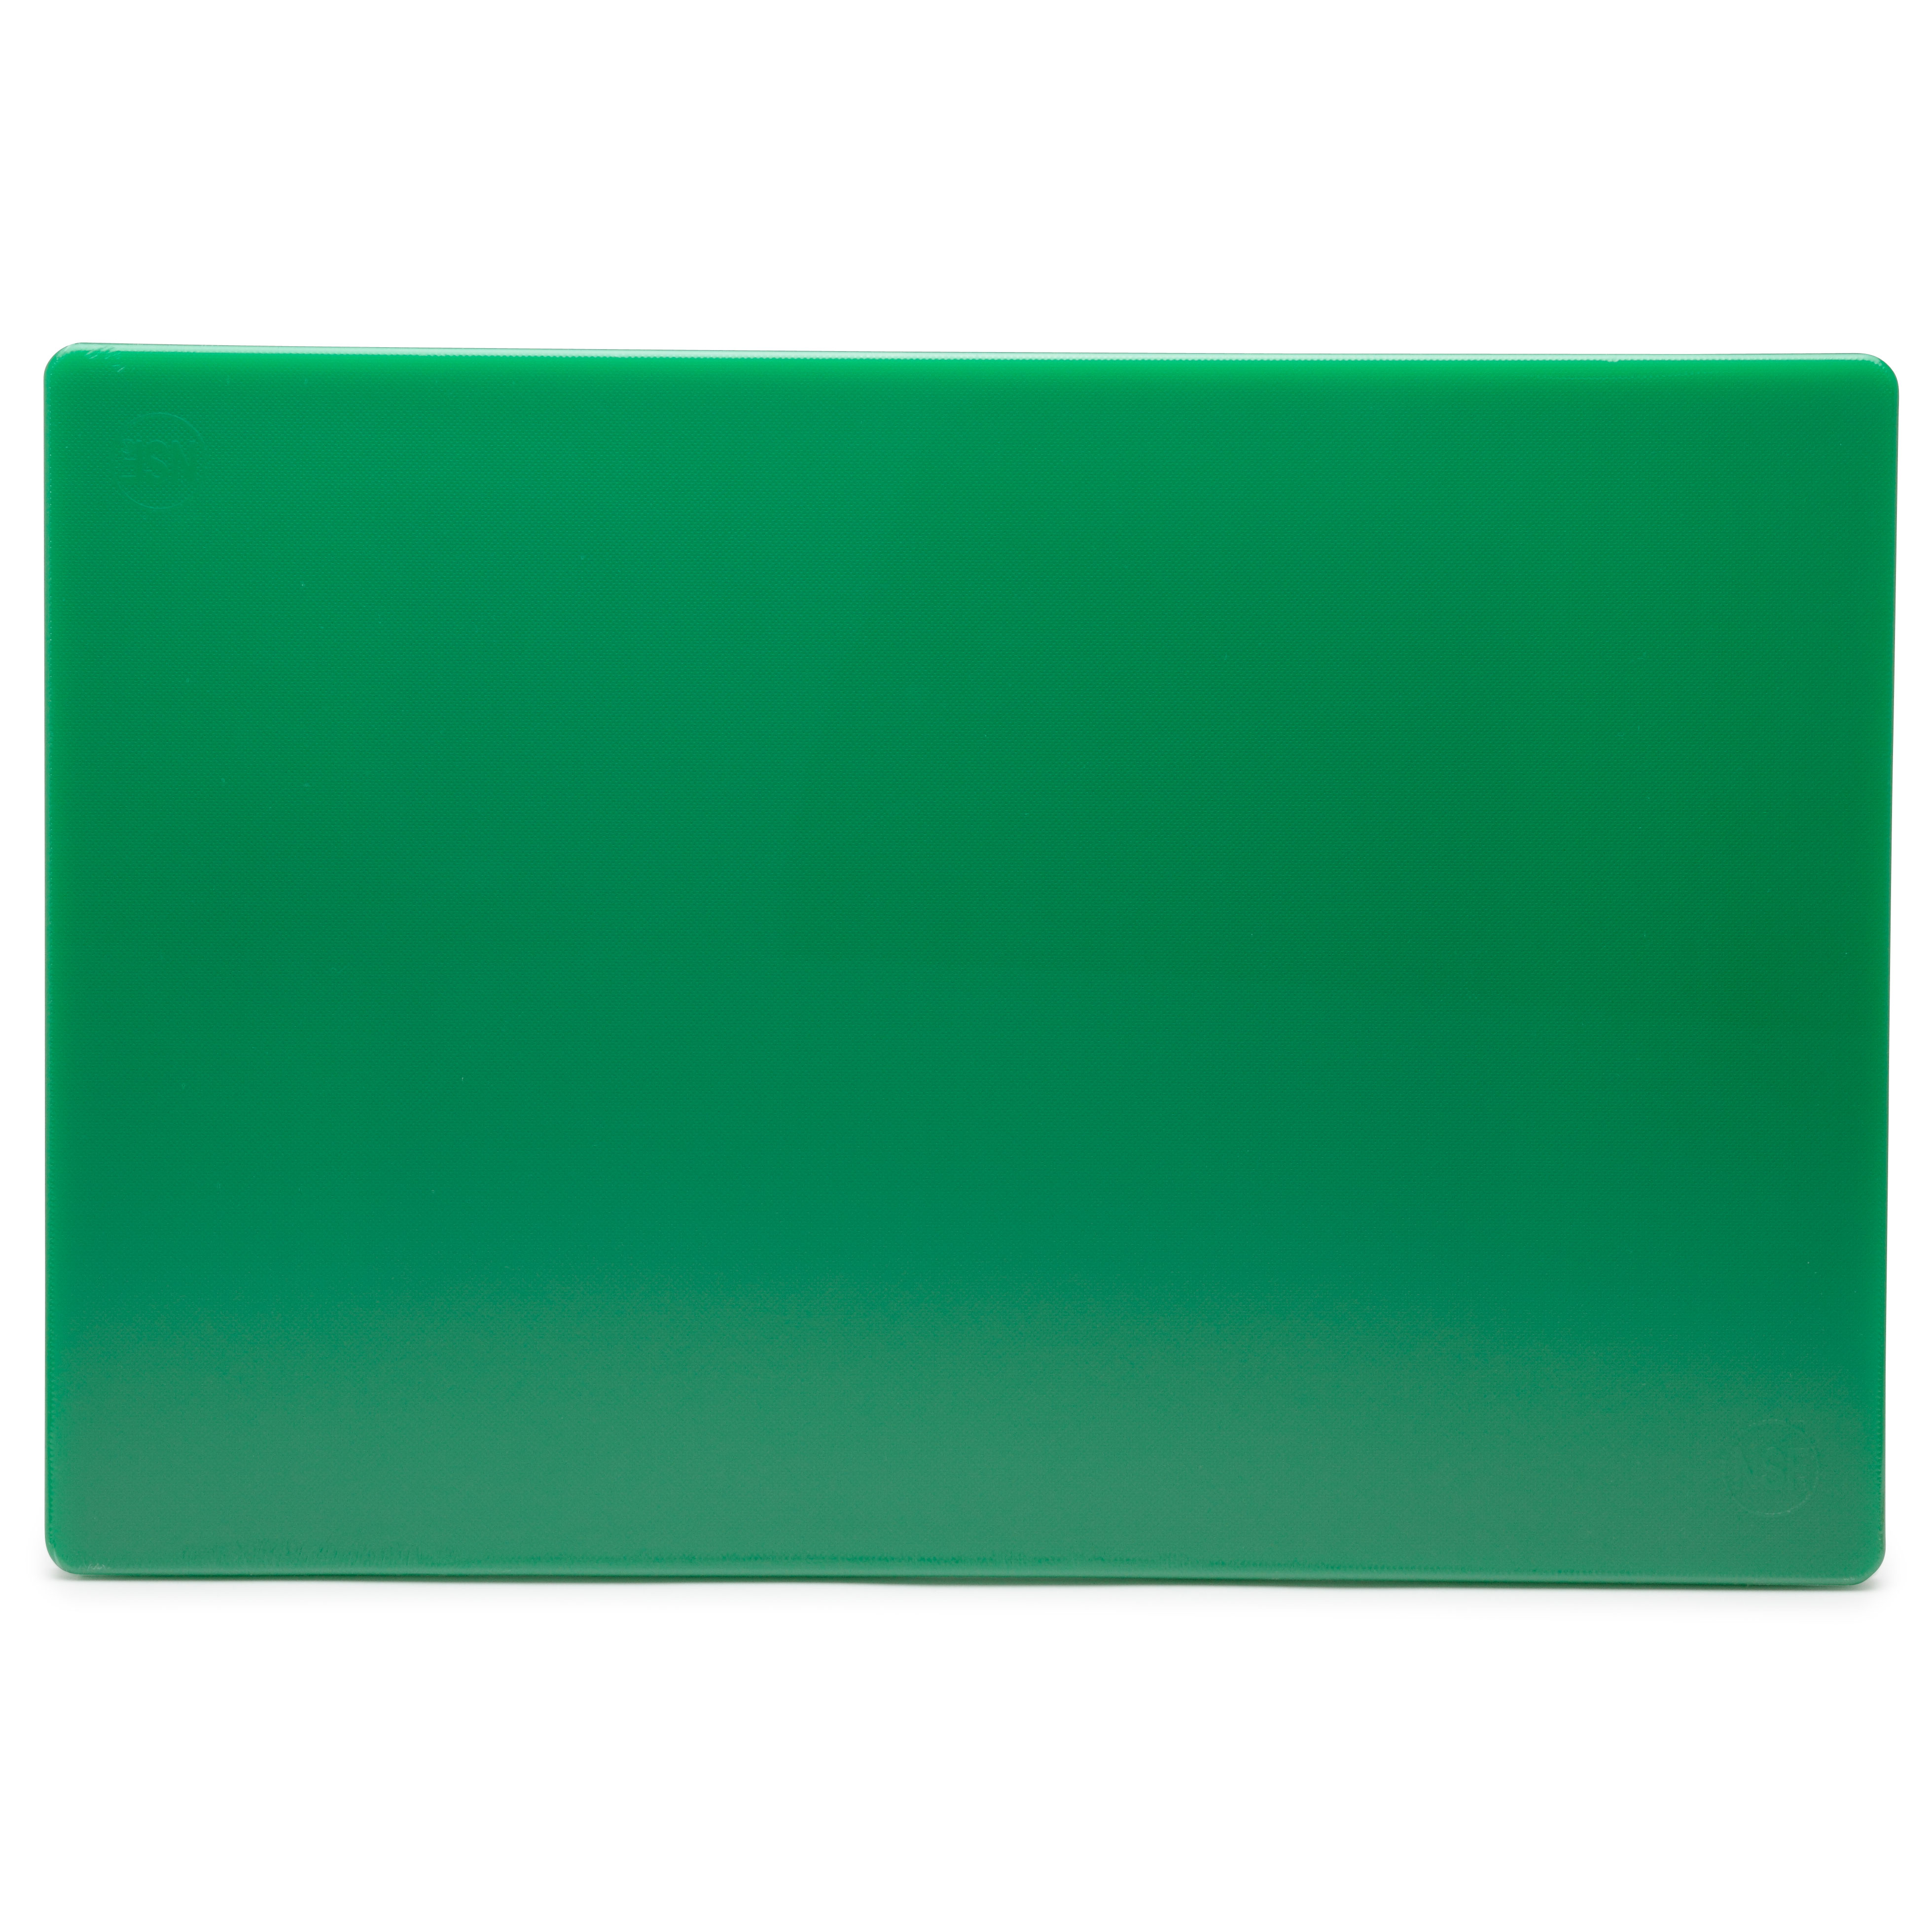 Royal Industries ROY CB 1824 G cutting board, plastic